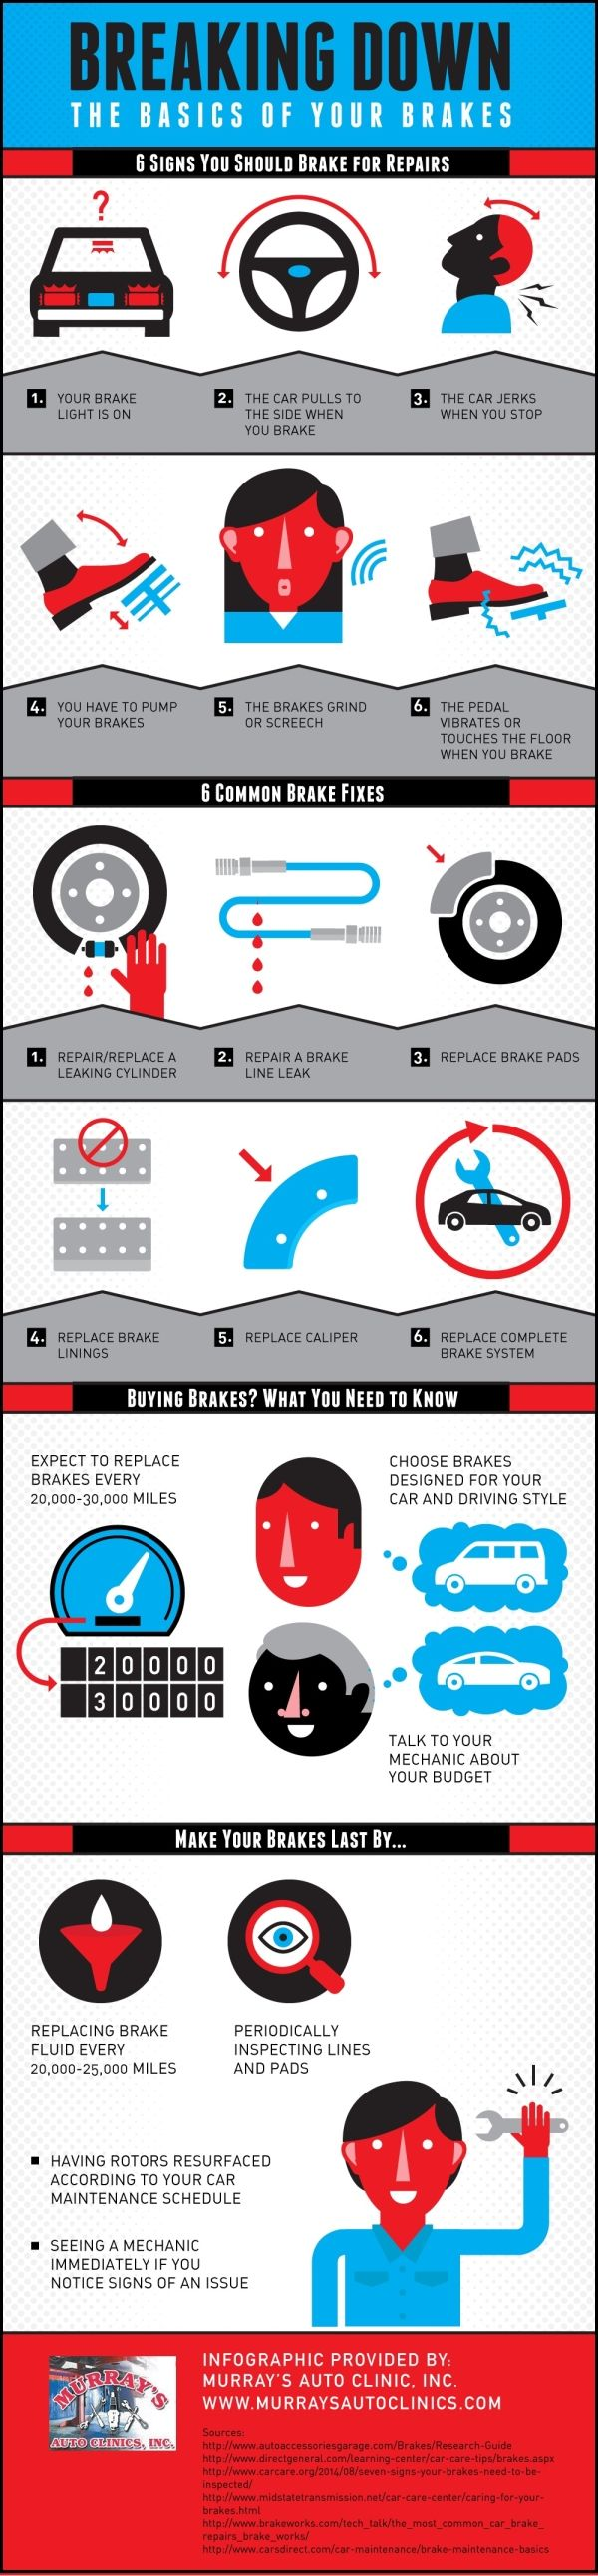 Replacing caliper, replacing brake linings, replacing brake pad—these are some of the most common brake fixes drivers can get at auto shops! Click over to this Silver Spring, MD auto repair infographic for more facts about brakes.